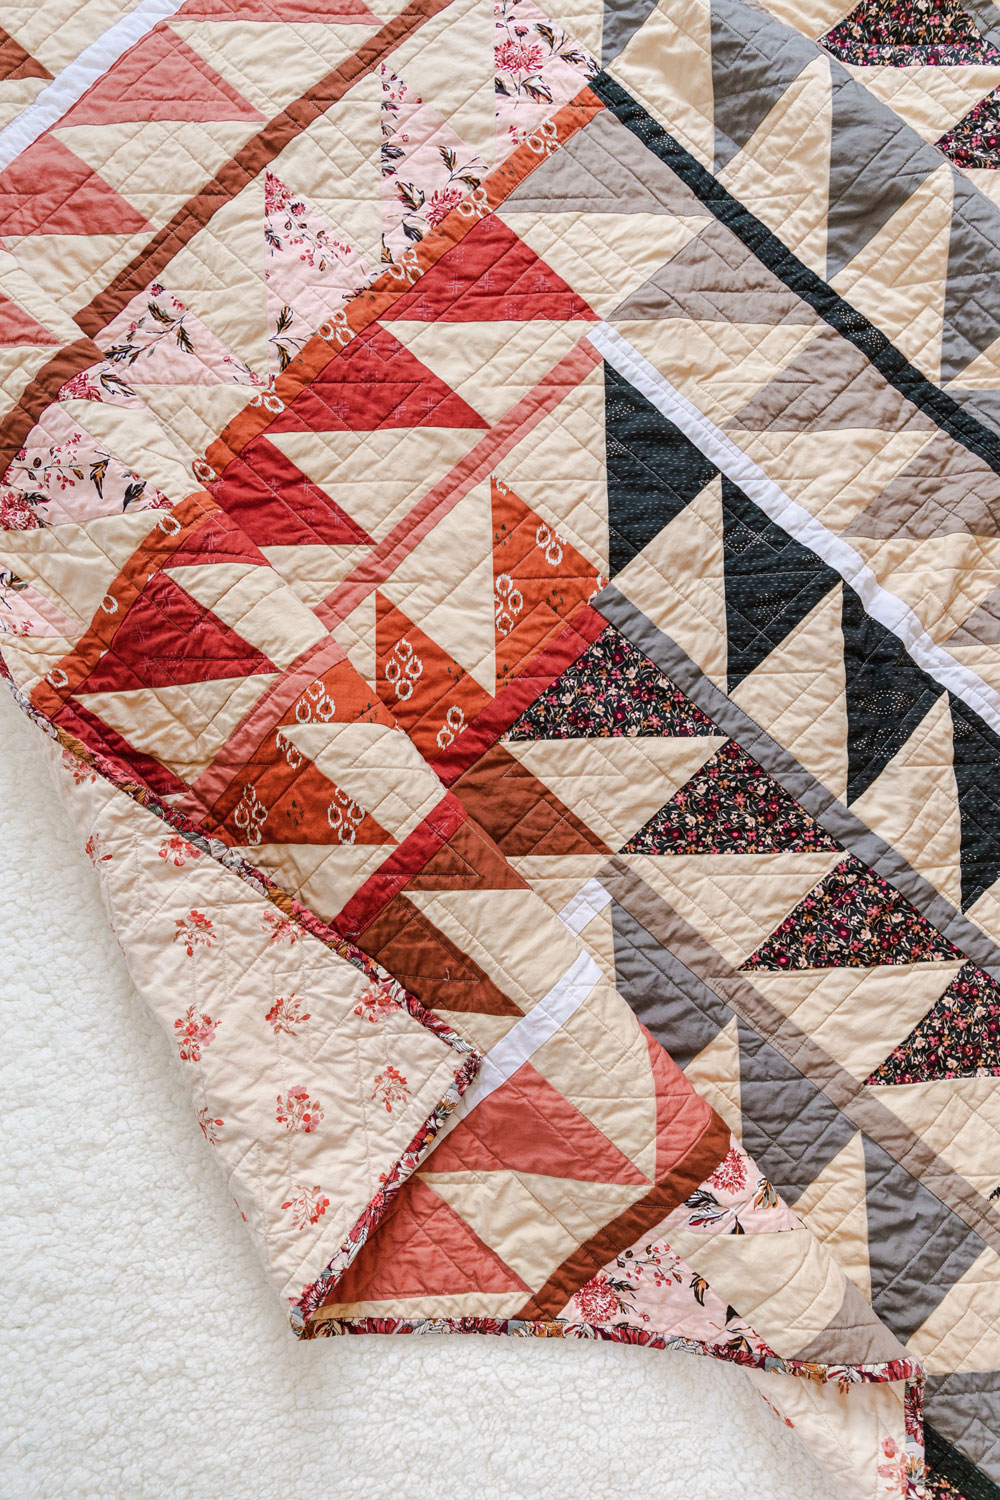 Join a fun sew along! It is easy to participate – all you need is the Gather quilt pattern so we make this quilt together! suzyquilts.com #quiltpattern #textiledesign